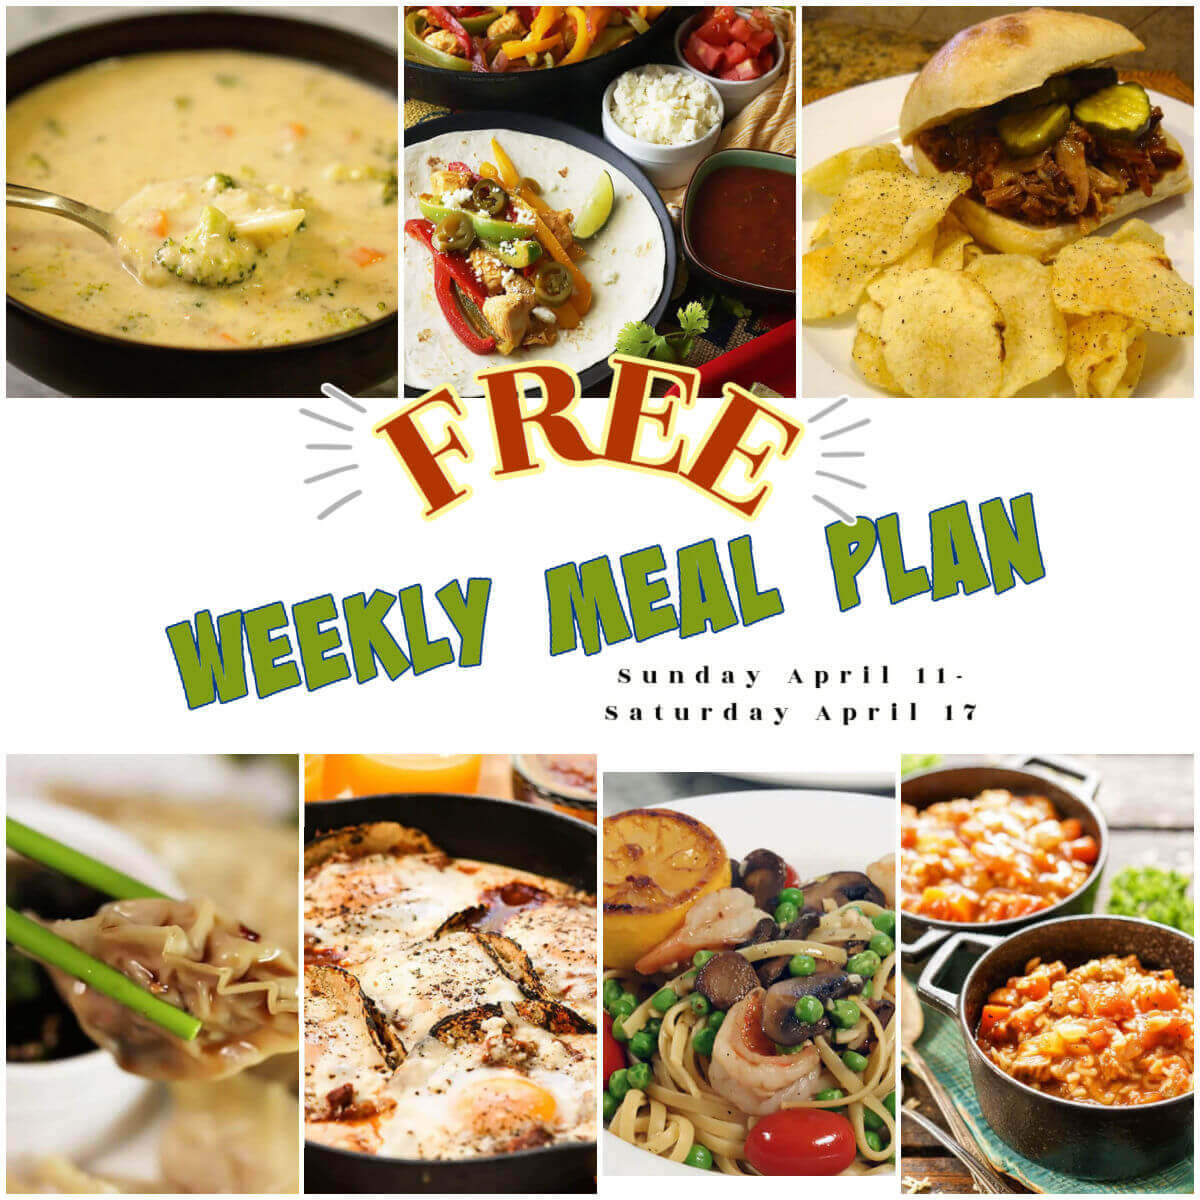 Photo of recipes included in the weekly meal plan, with print overlay.